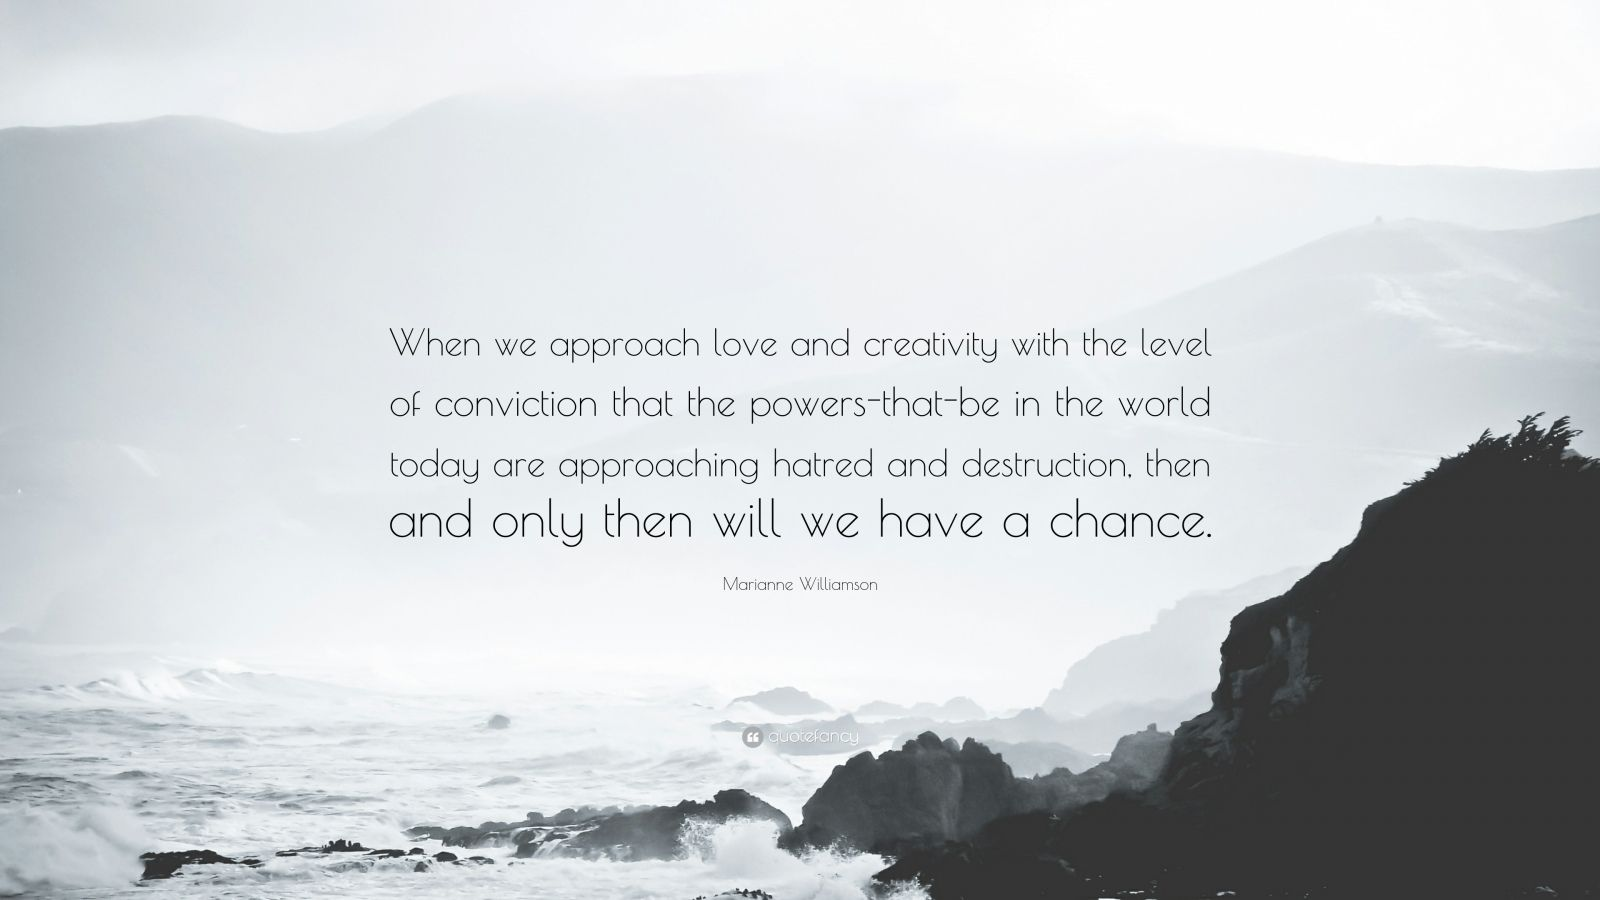 """Marianne Williamson Quote: """"When we approach love and creativity with the level of conviction that the powers-that-be in the world today are approaching hatred and destruction, then and only then will we have a chance."""""""